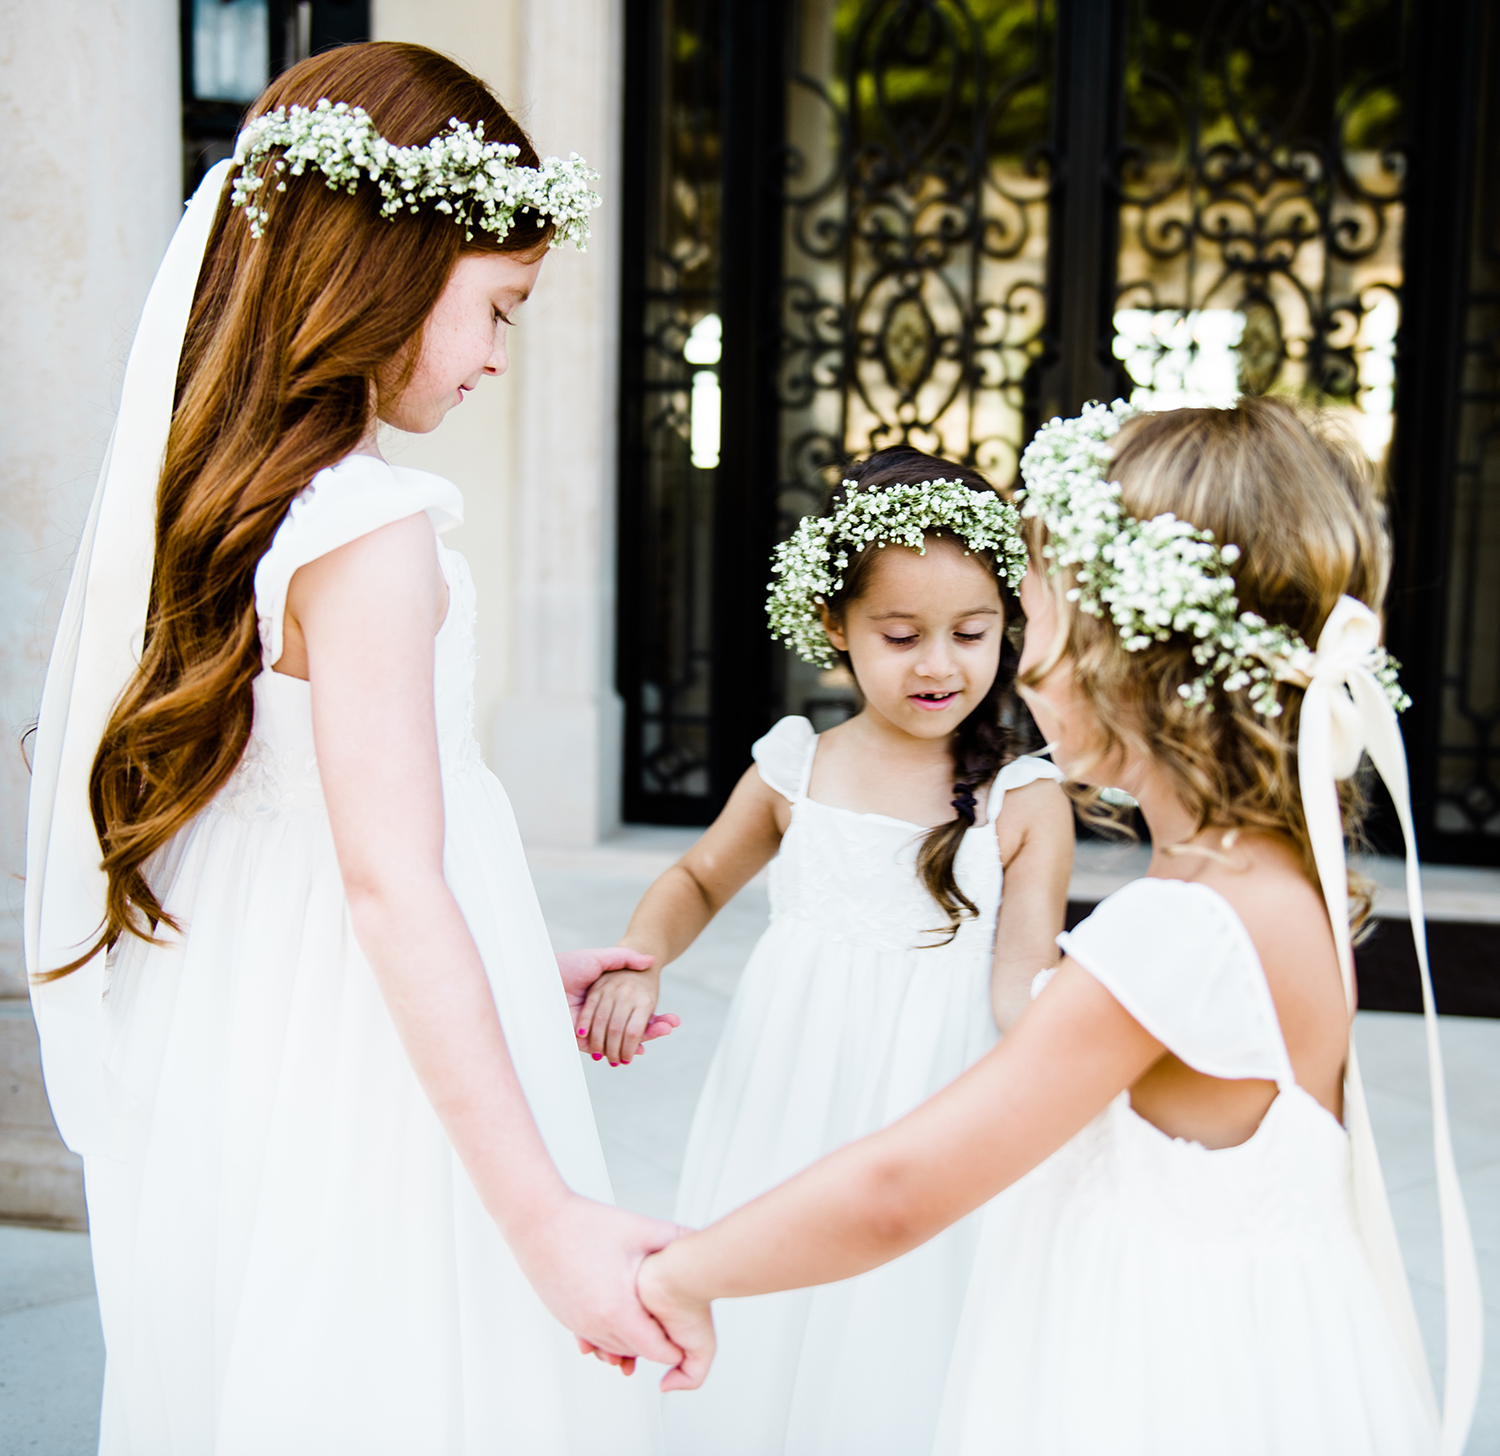 livvyland-blog-olivia-watson-wedding-villa-del-lago-austin-texas-fall-blush-burgundy-classic-romantic-flower-girls-crowns-whimsical